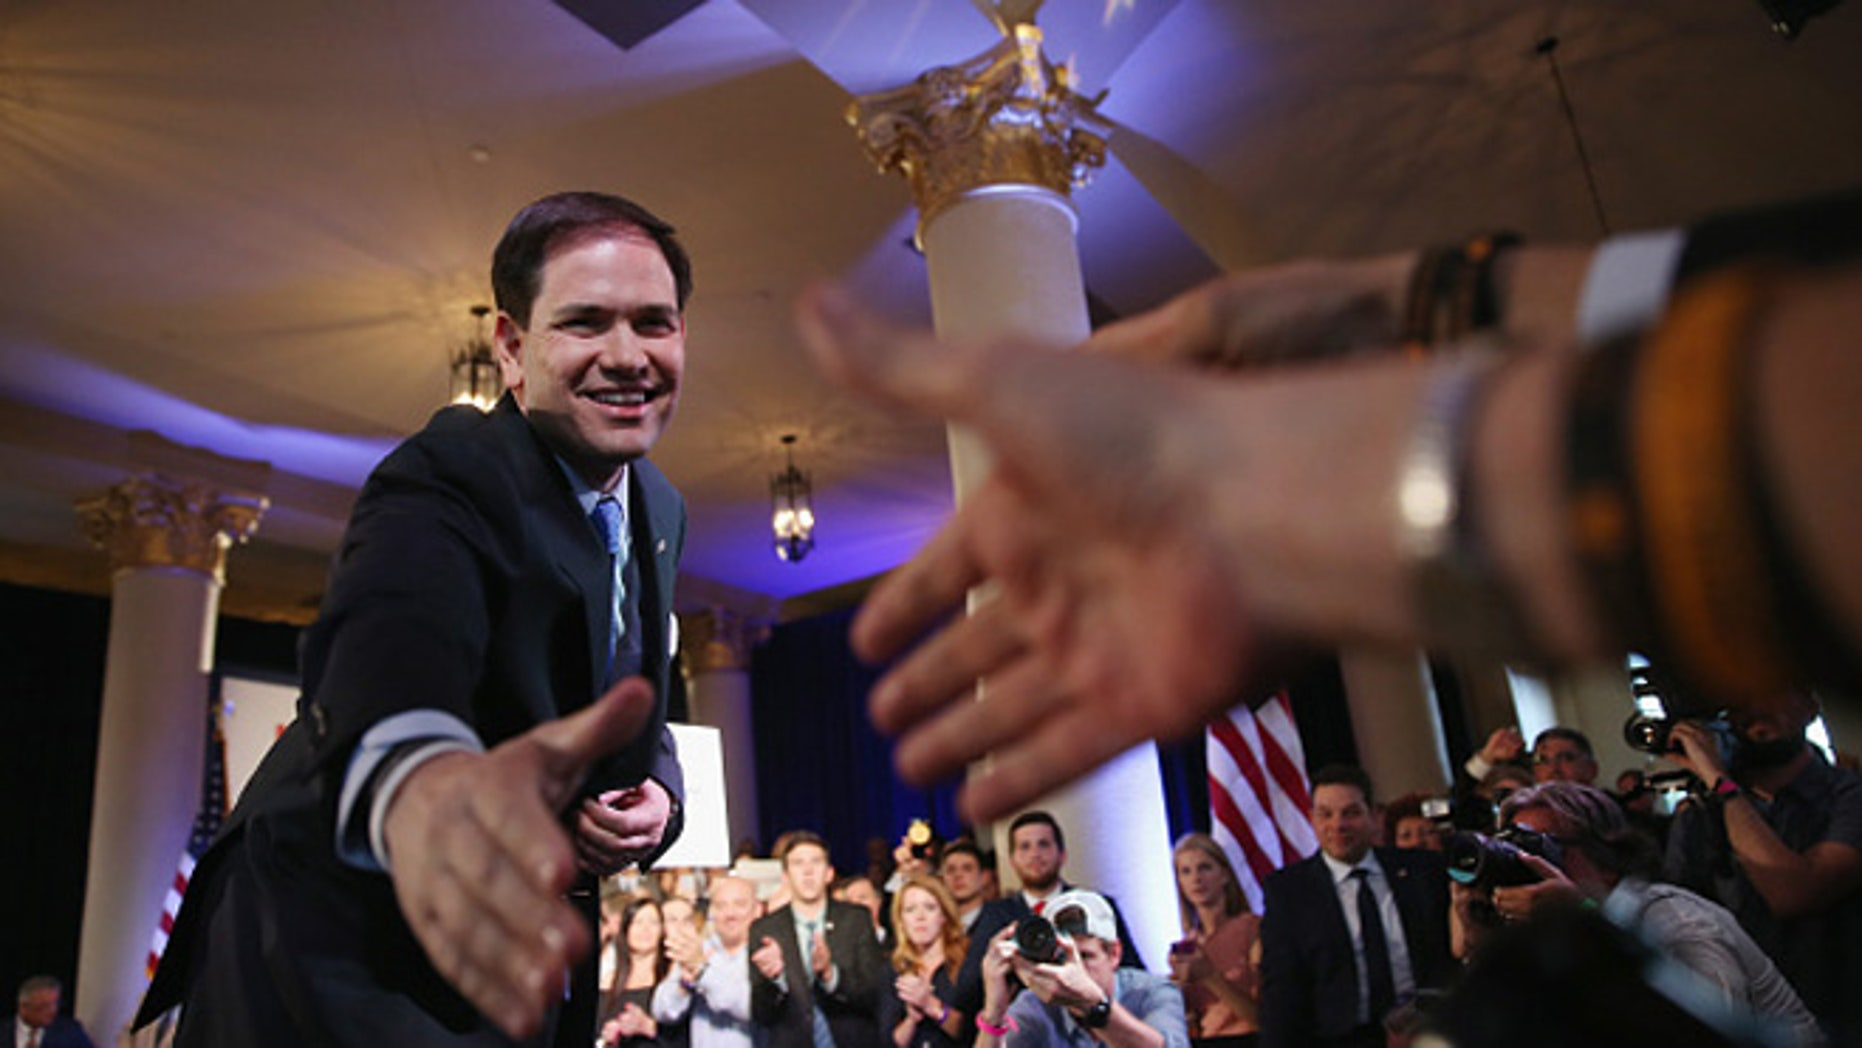 MIAMI, FL - APRIL 13:  U.S. Sen. Marco Rubio (R-FL) greets people after announcing his candidacy for the Republican presidential nomination during an event at the Freedom Tower on April 13, 2015 in Miami, Florida. Rubio is one of three Republican candidates to announce their plans on running against the Democratic challenger for the White House.